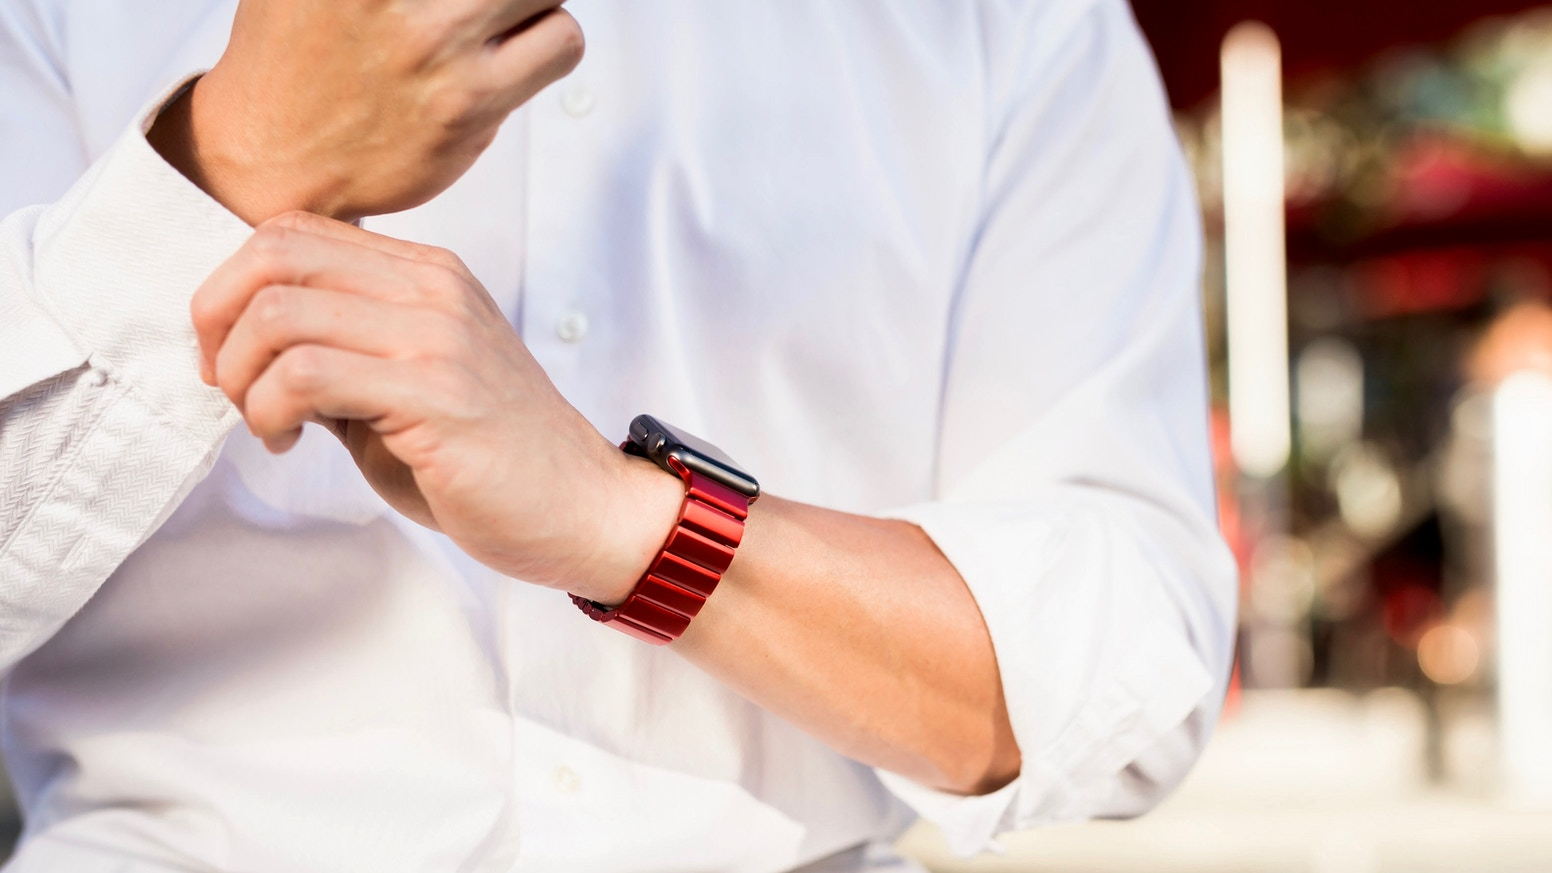 We're creating some of the best metal Apple Watch bands with original designs and precision Swiss quality manufacturing. If you missed out on this campaign, not to worry, we're offering some fantastic pre-order discounts right now on our website.